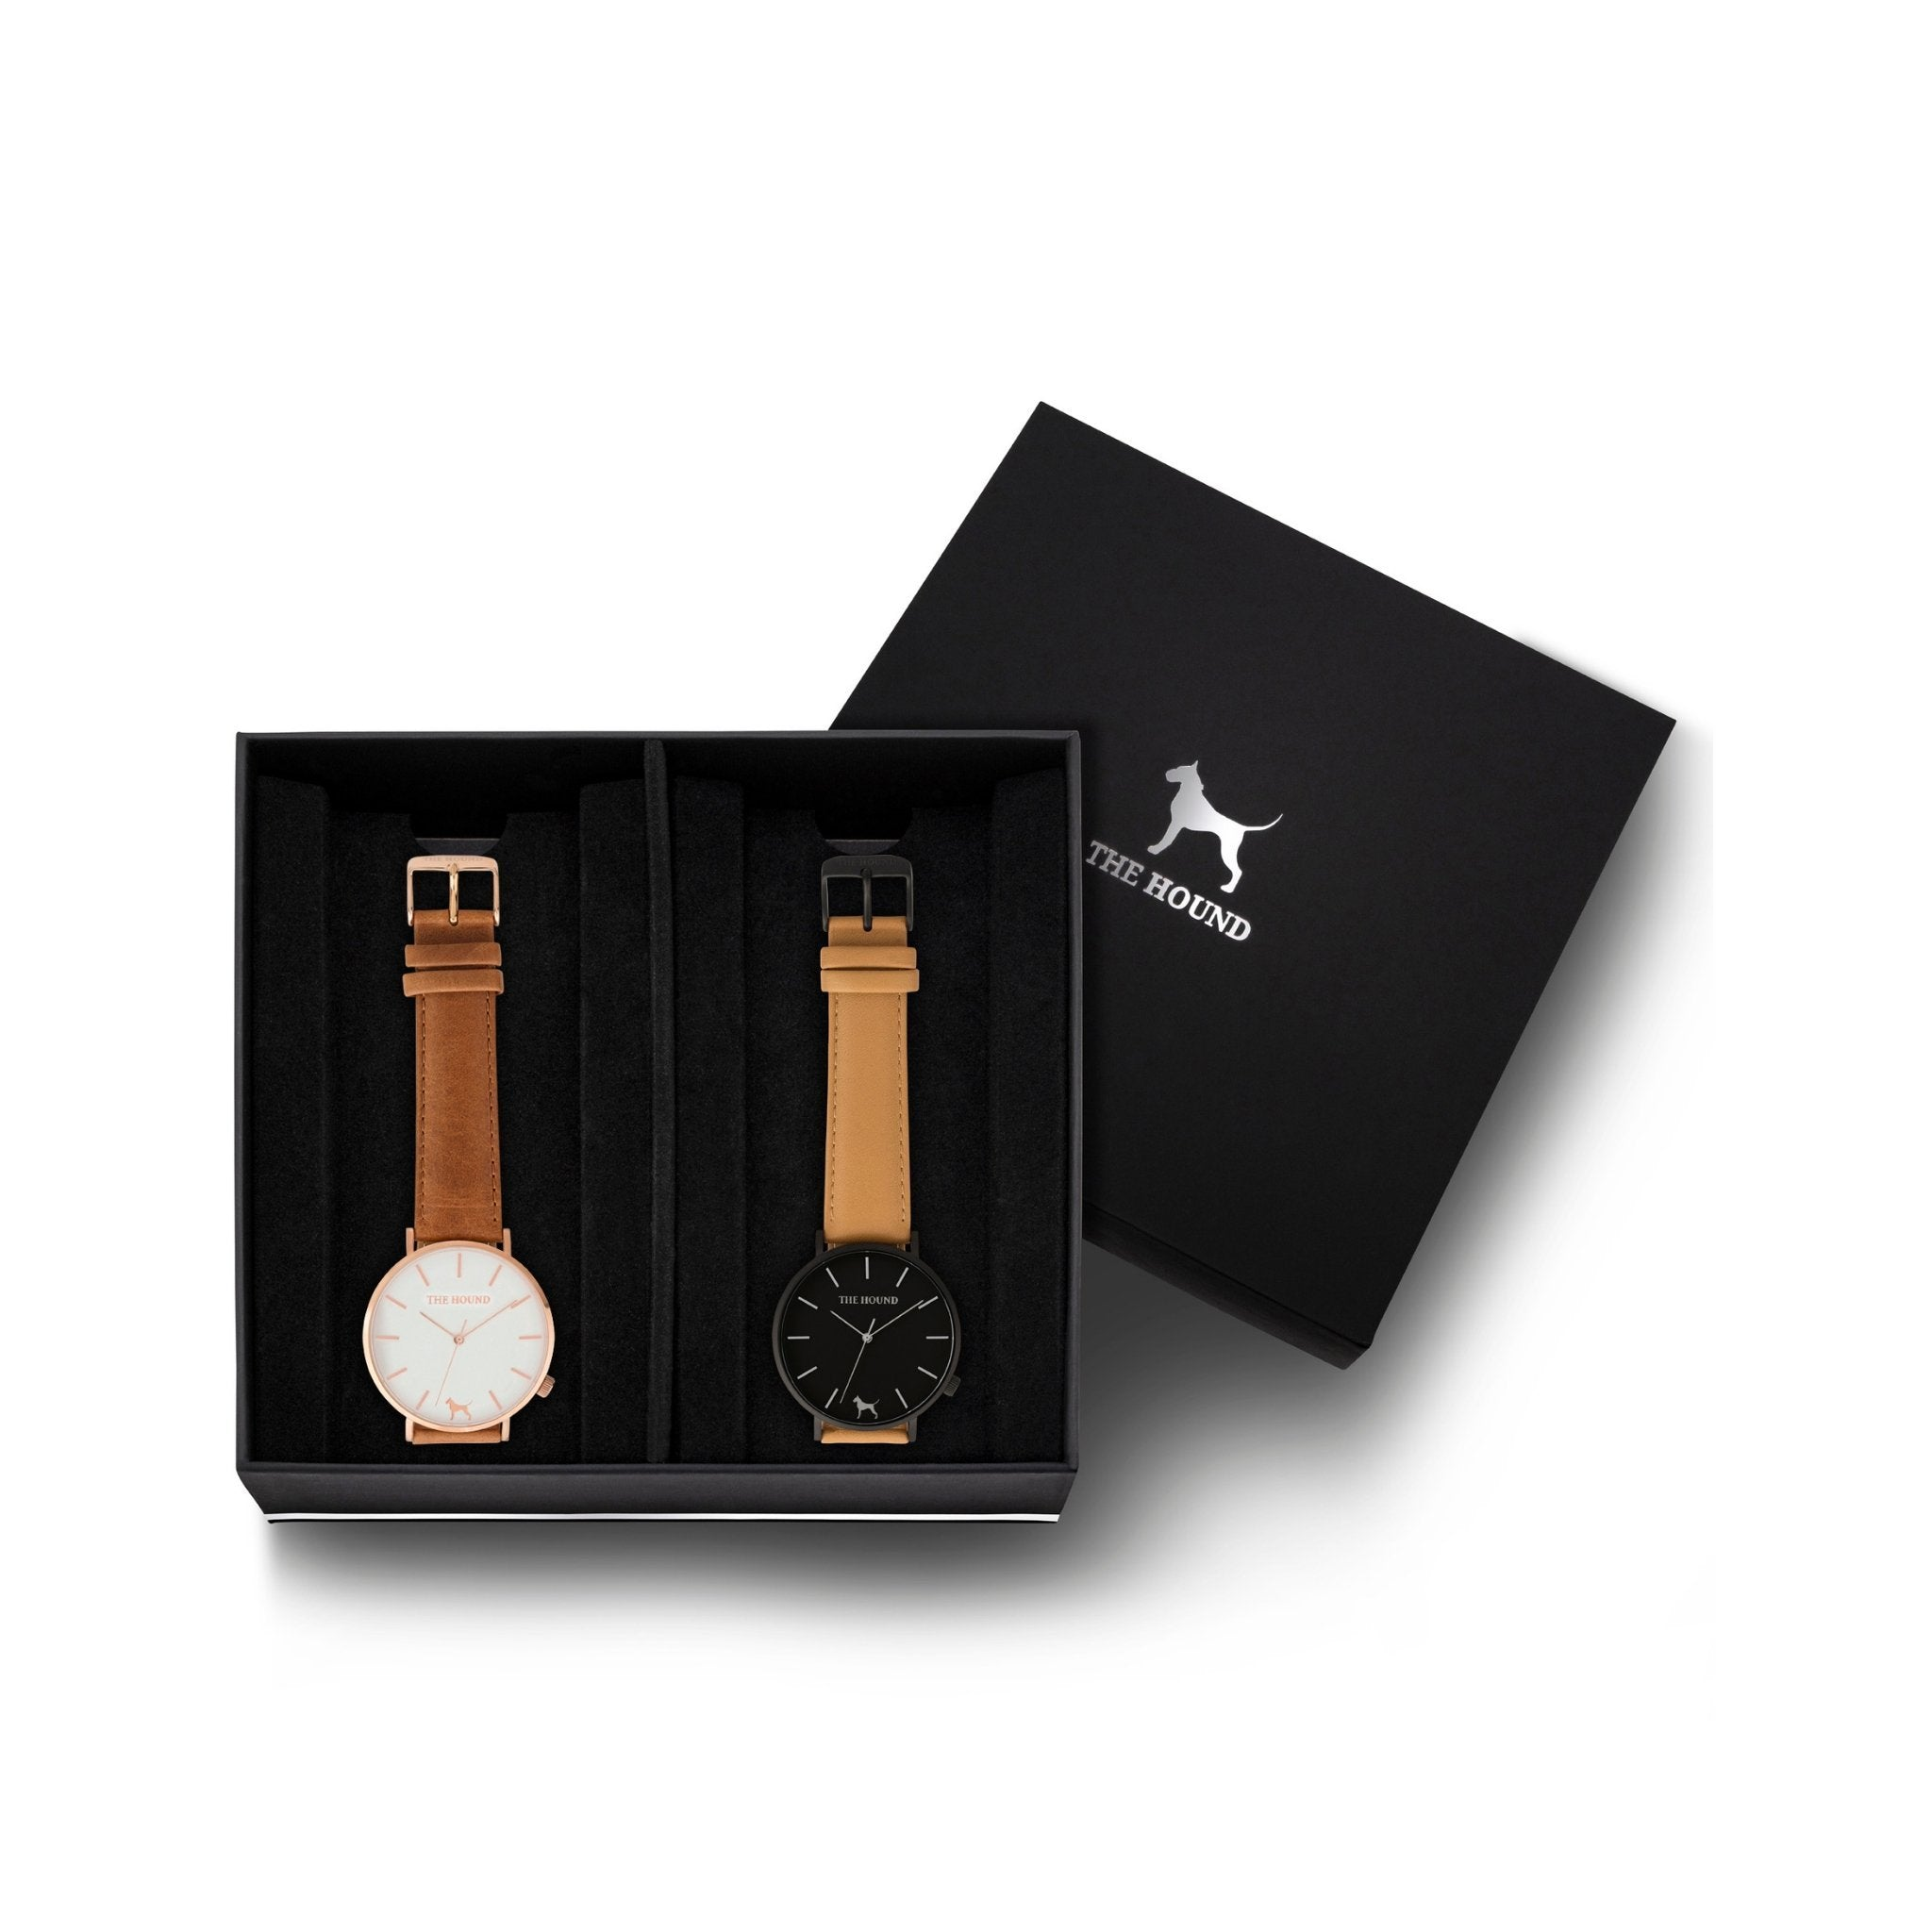 Custom gift set - Rose gold and white watch with stitched tan genuine leather band and a matte black and black watch with stitched camel genuine leather band